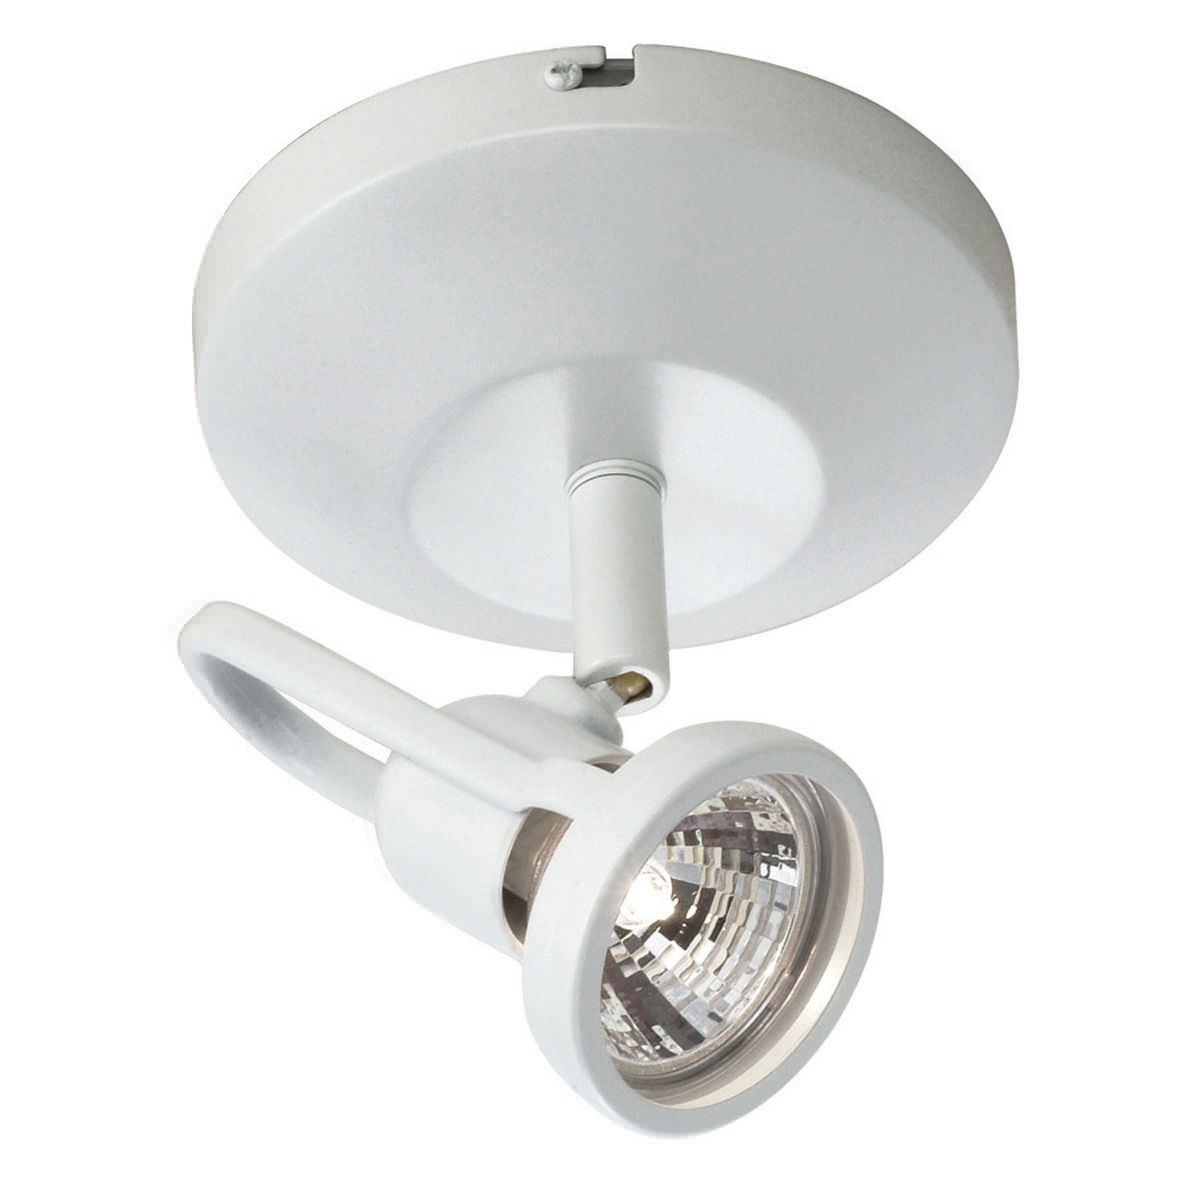 Ceiling mounted spotlight indoor halogen round me 826 ceiling mounted spotlight indoor halogen round me 826 mozeypictures